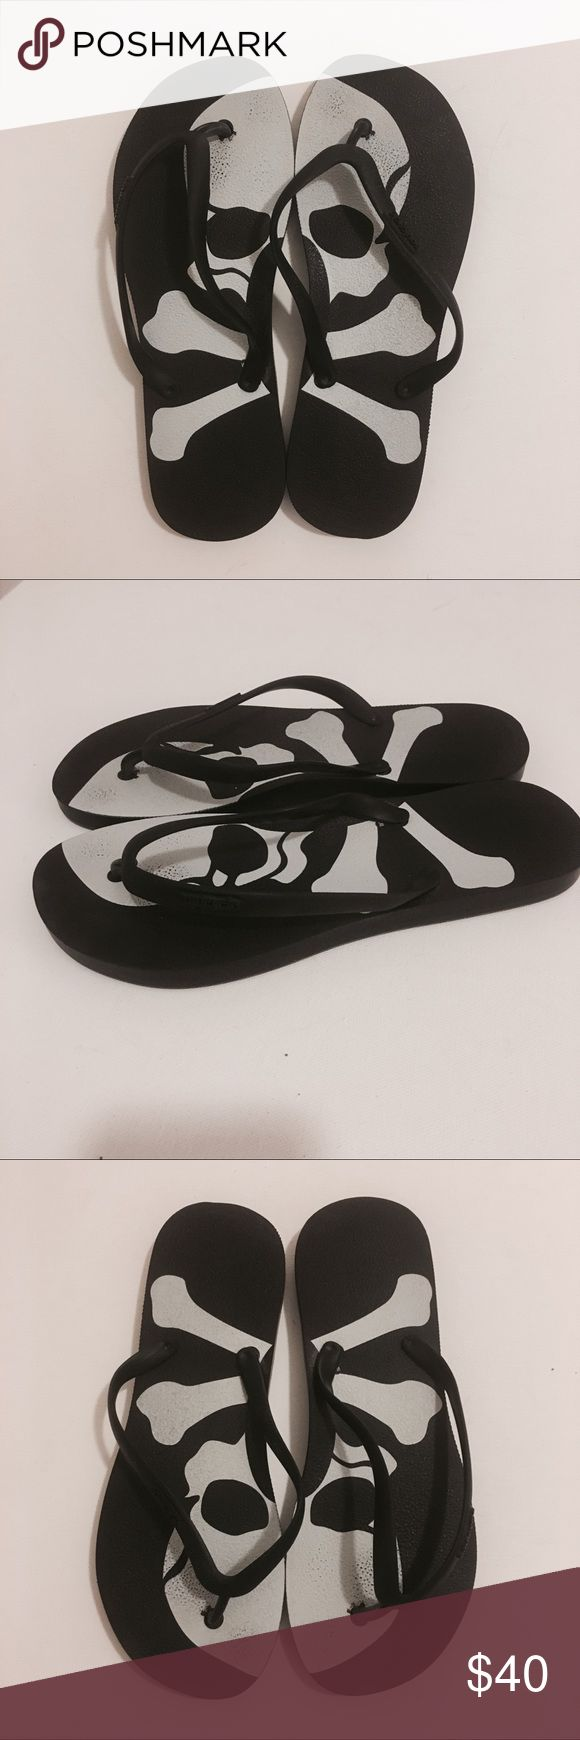 SoulCycle new skull flat sandals! SoulCycle new flats sandals! SoulCycle Shoes Sandals